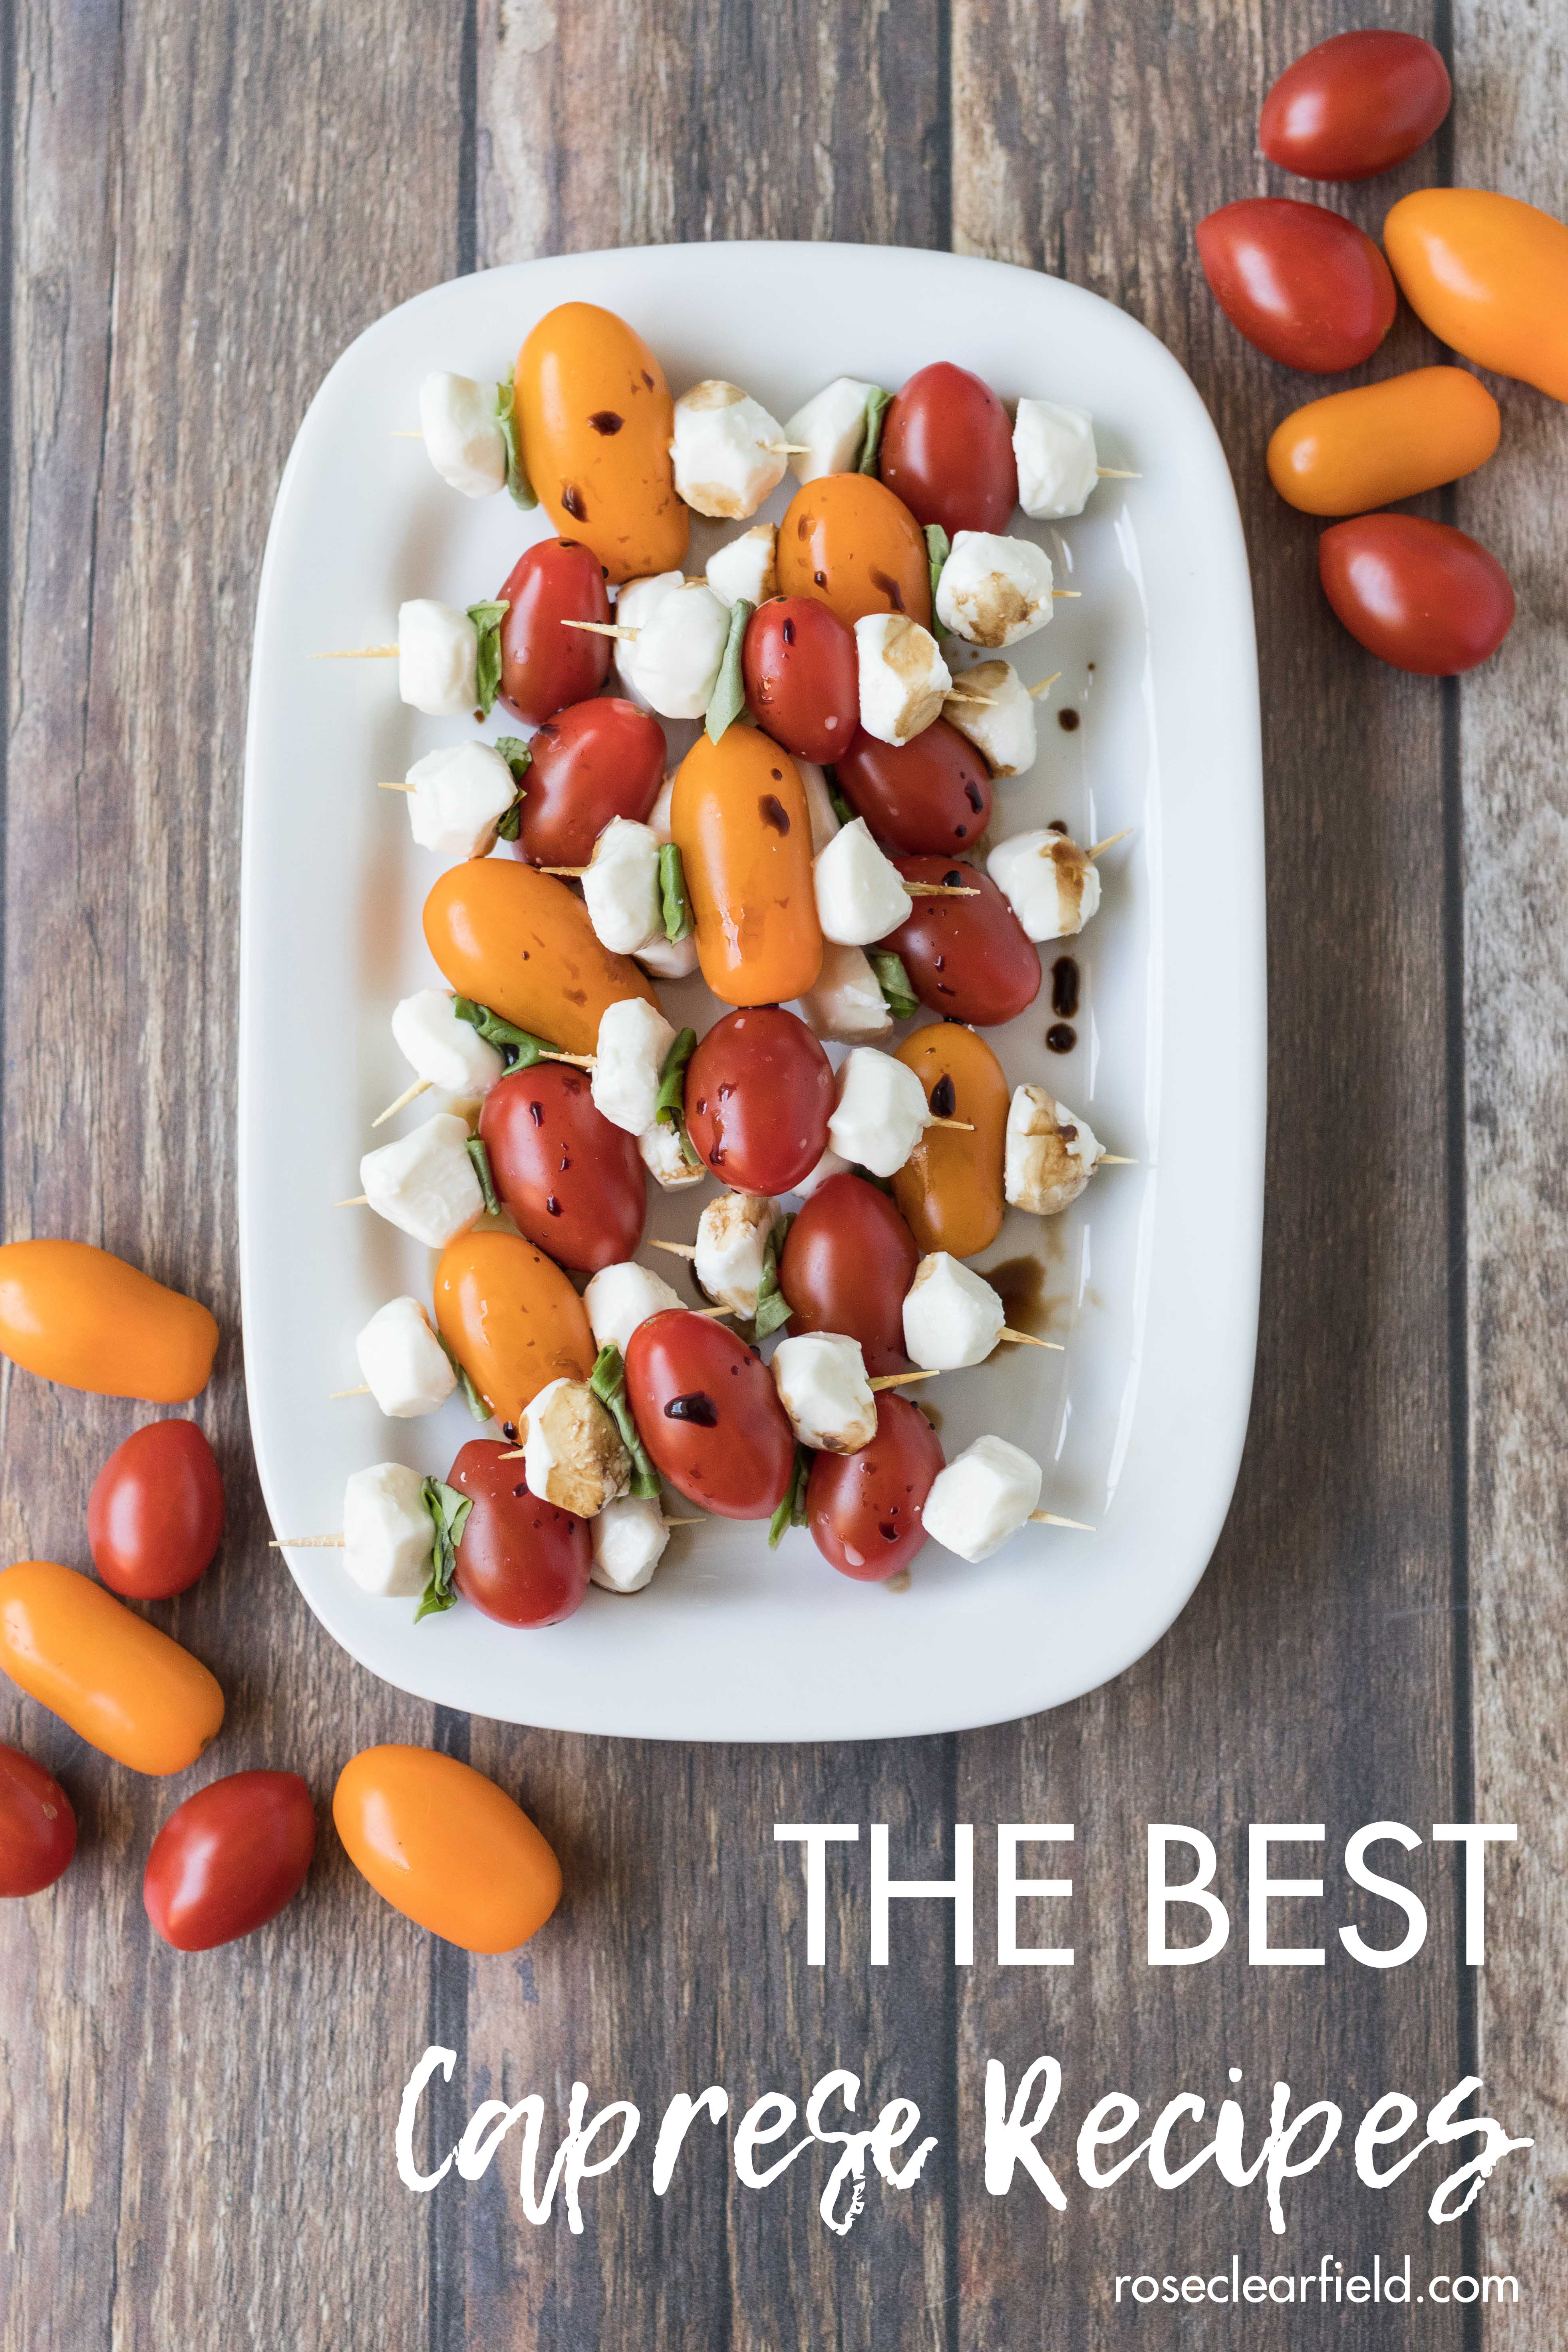 The go-to caprese recipes you need for summer dinners and parties. Salads, appetizers, pasta salads, chicken, sandwiches, and more. #caprese #capreserecipes #summereating | https://www.roseclearfield.com